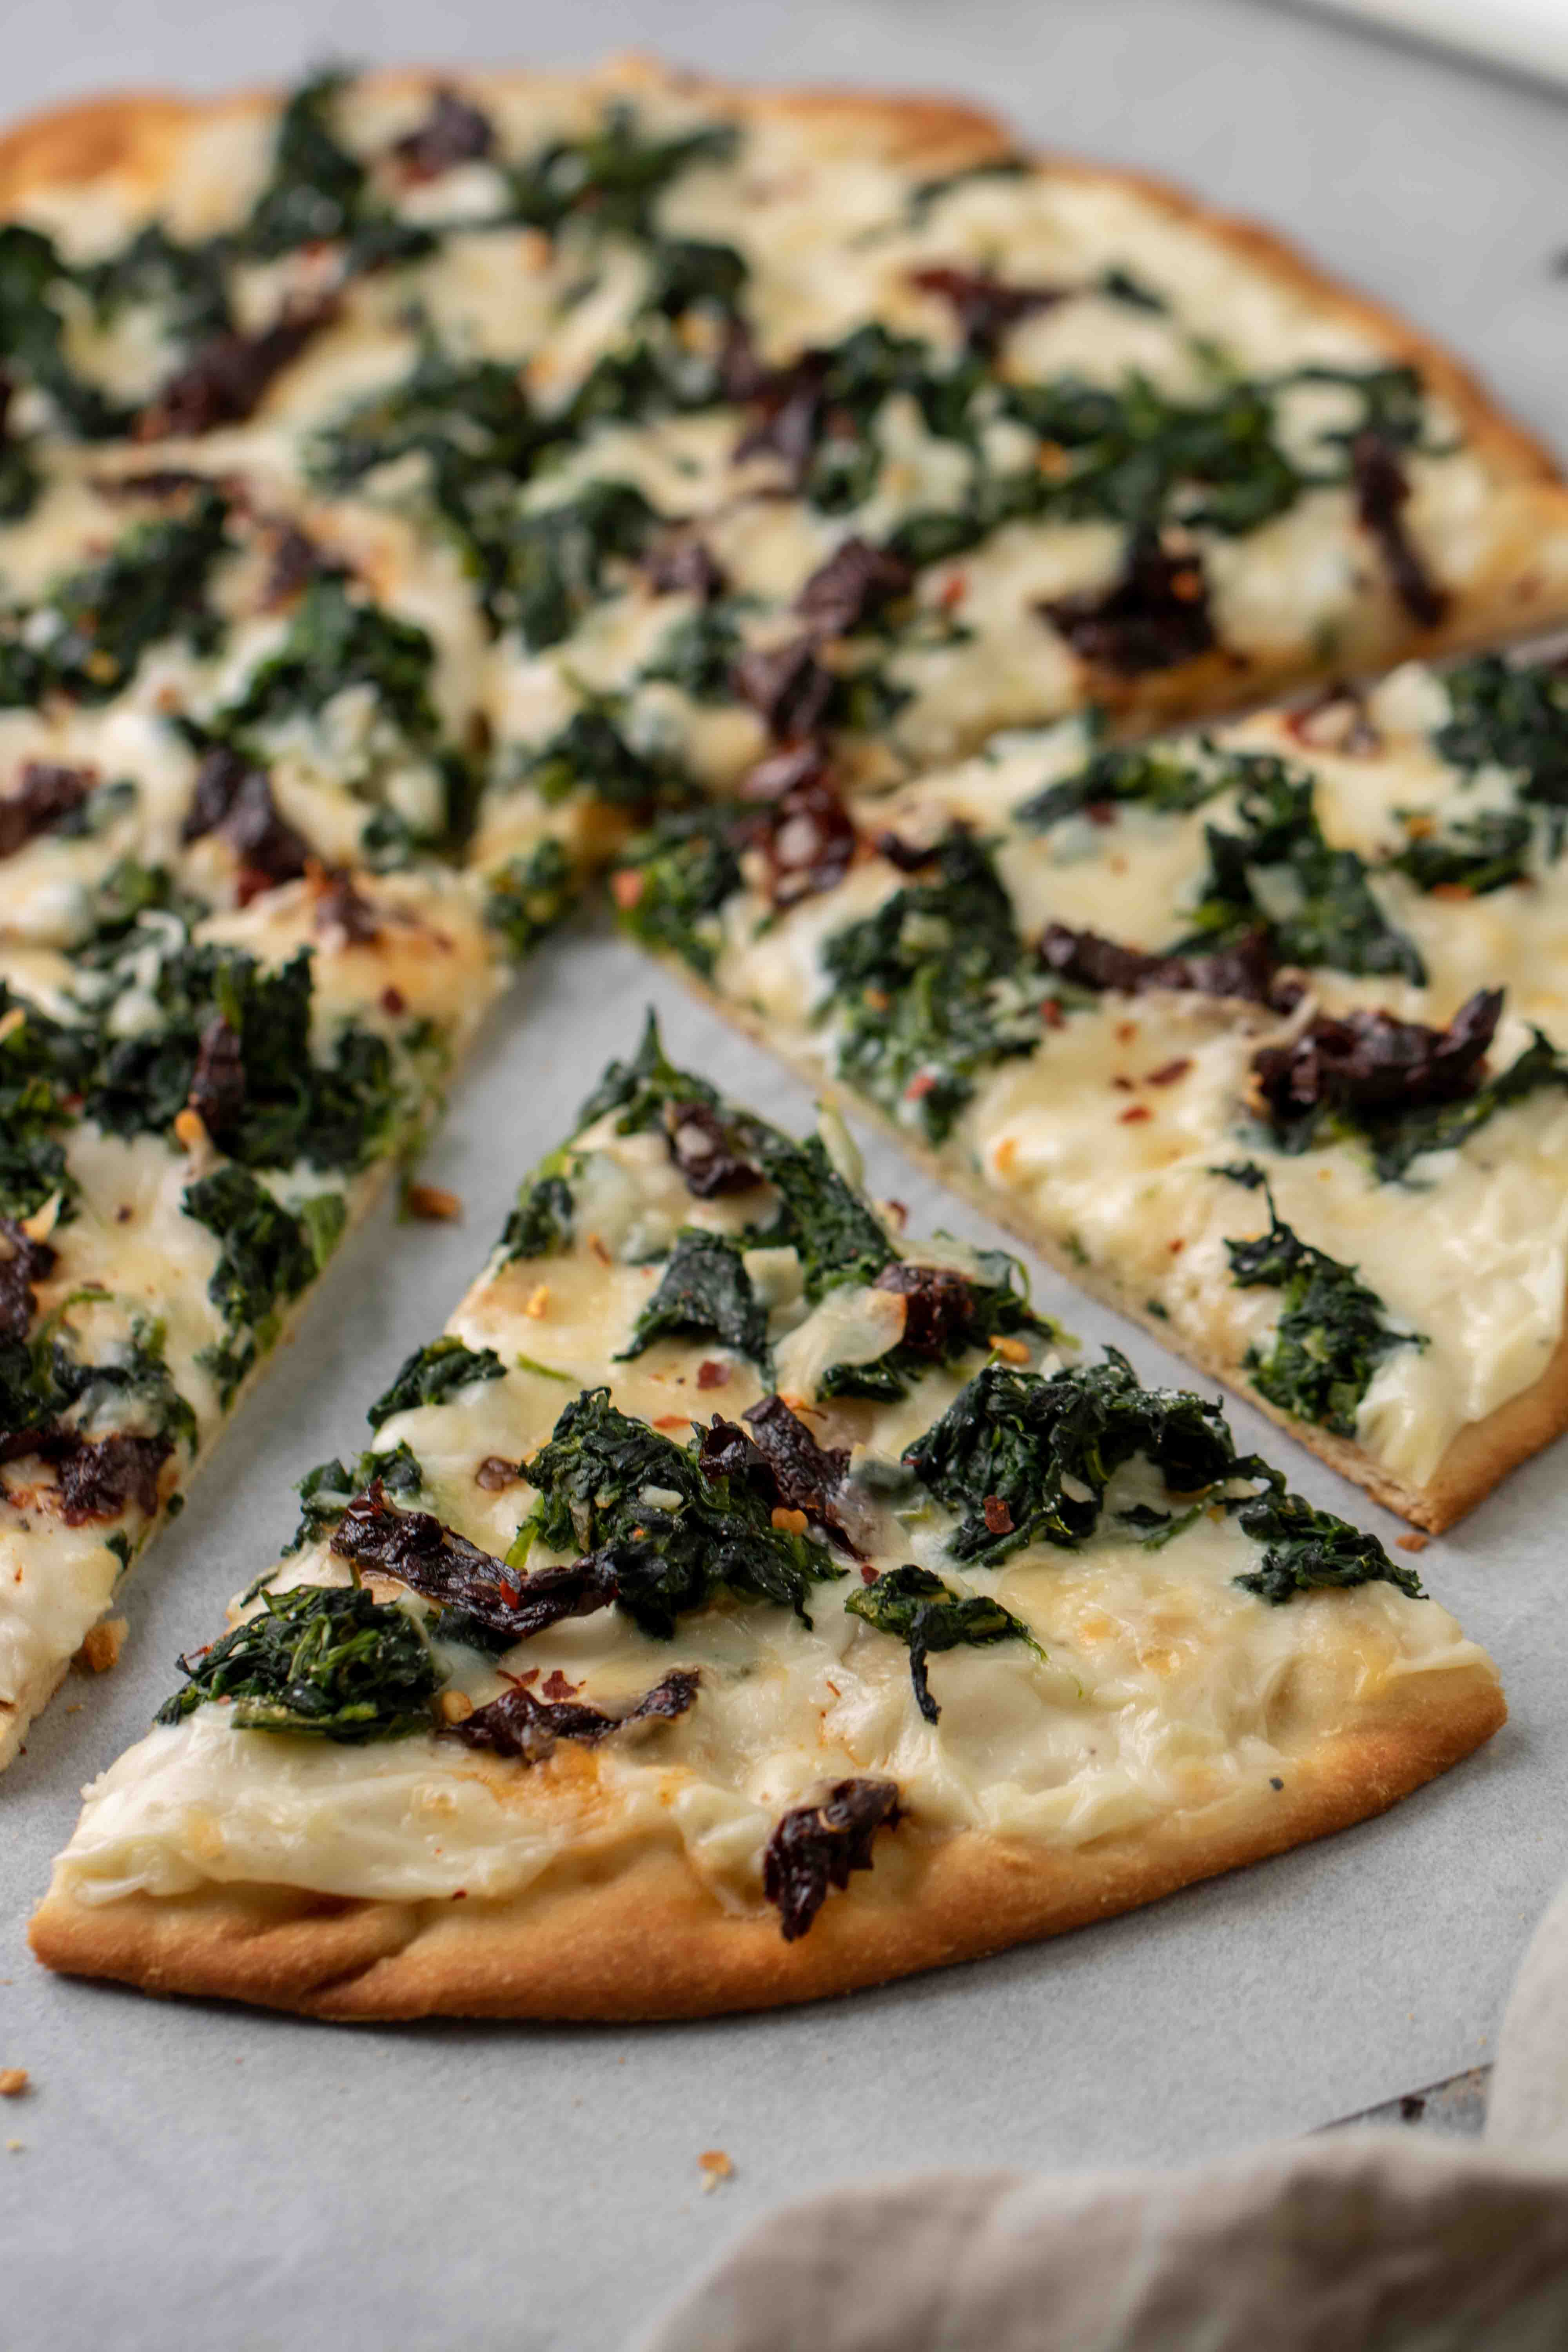 Pizza with white sauce, spinach and sun dried tomatoes